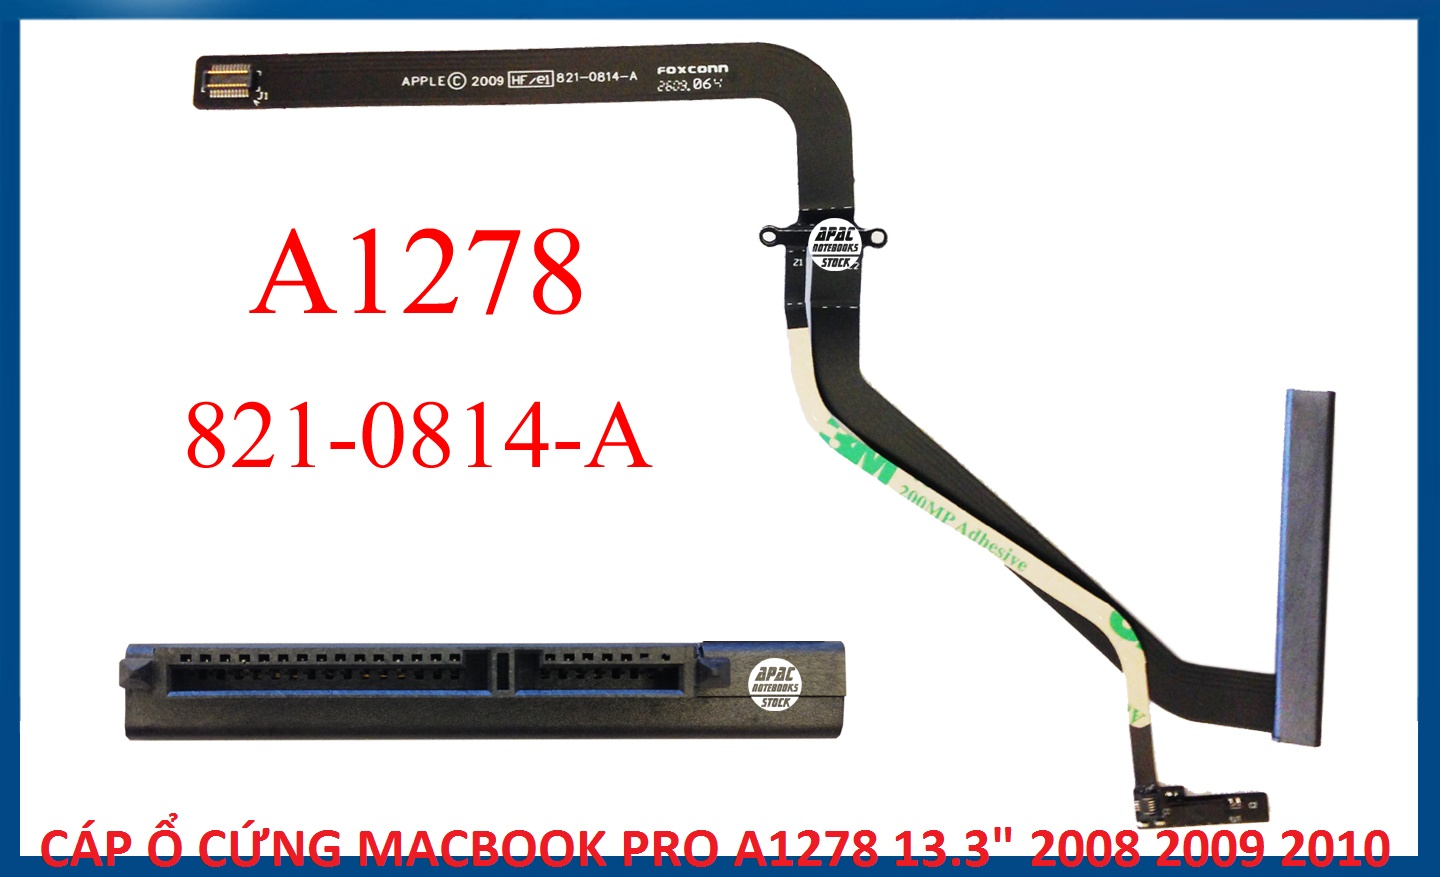 A1278 Hard Drive Cable 821-0814-A 2008 2009 2010